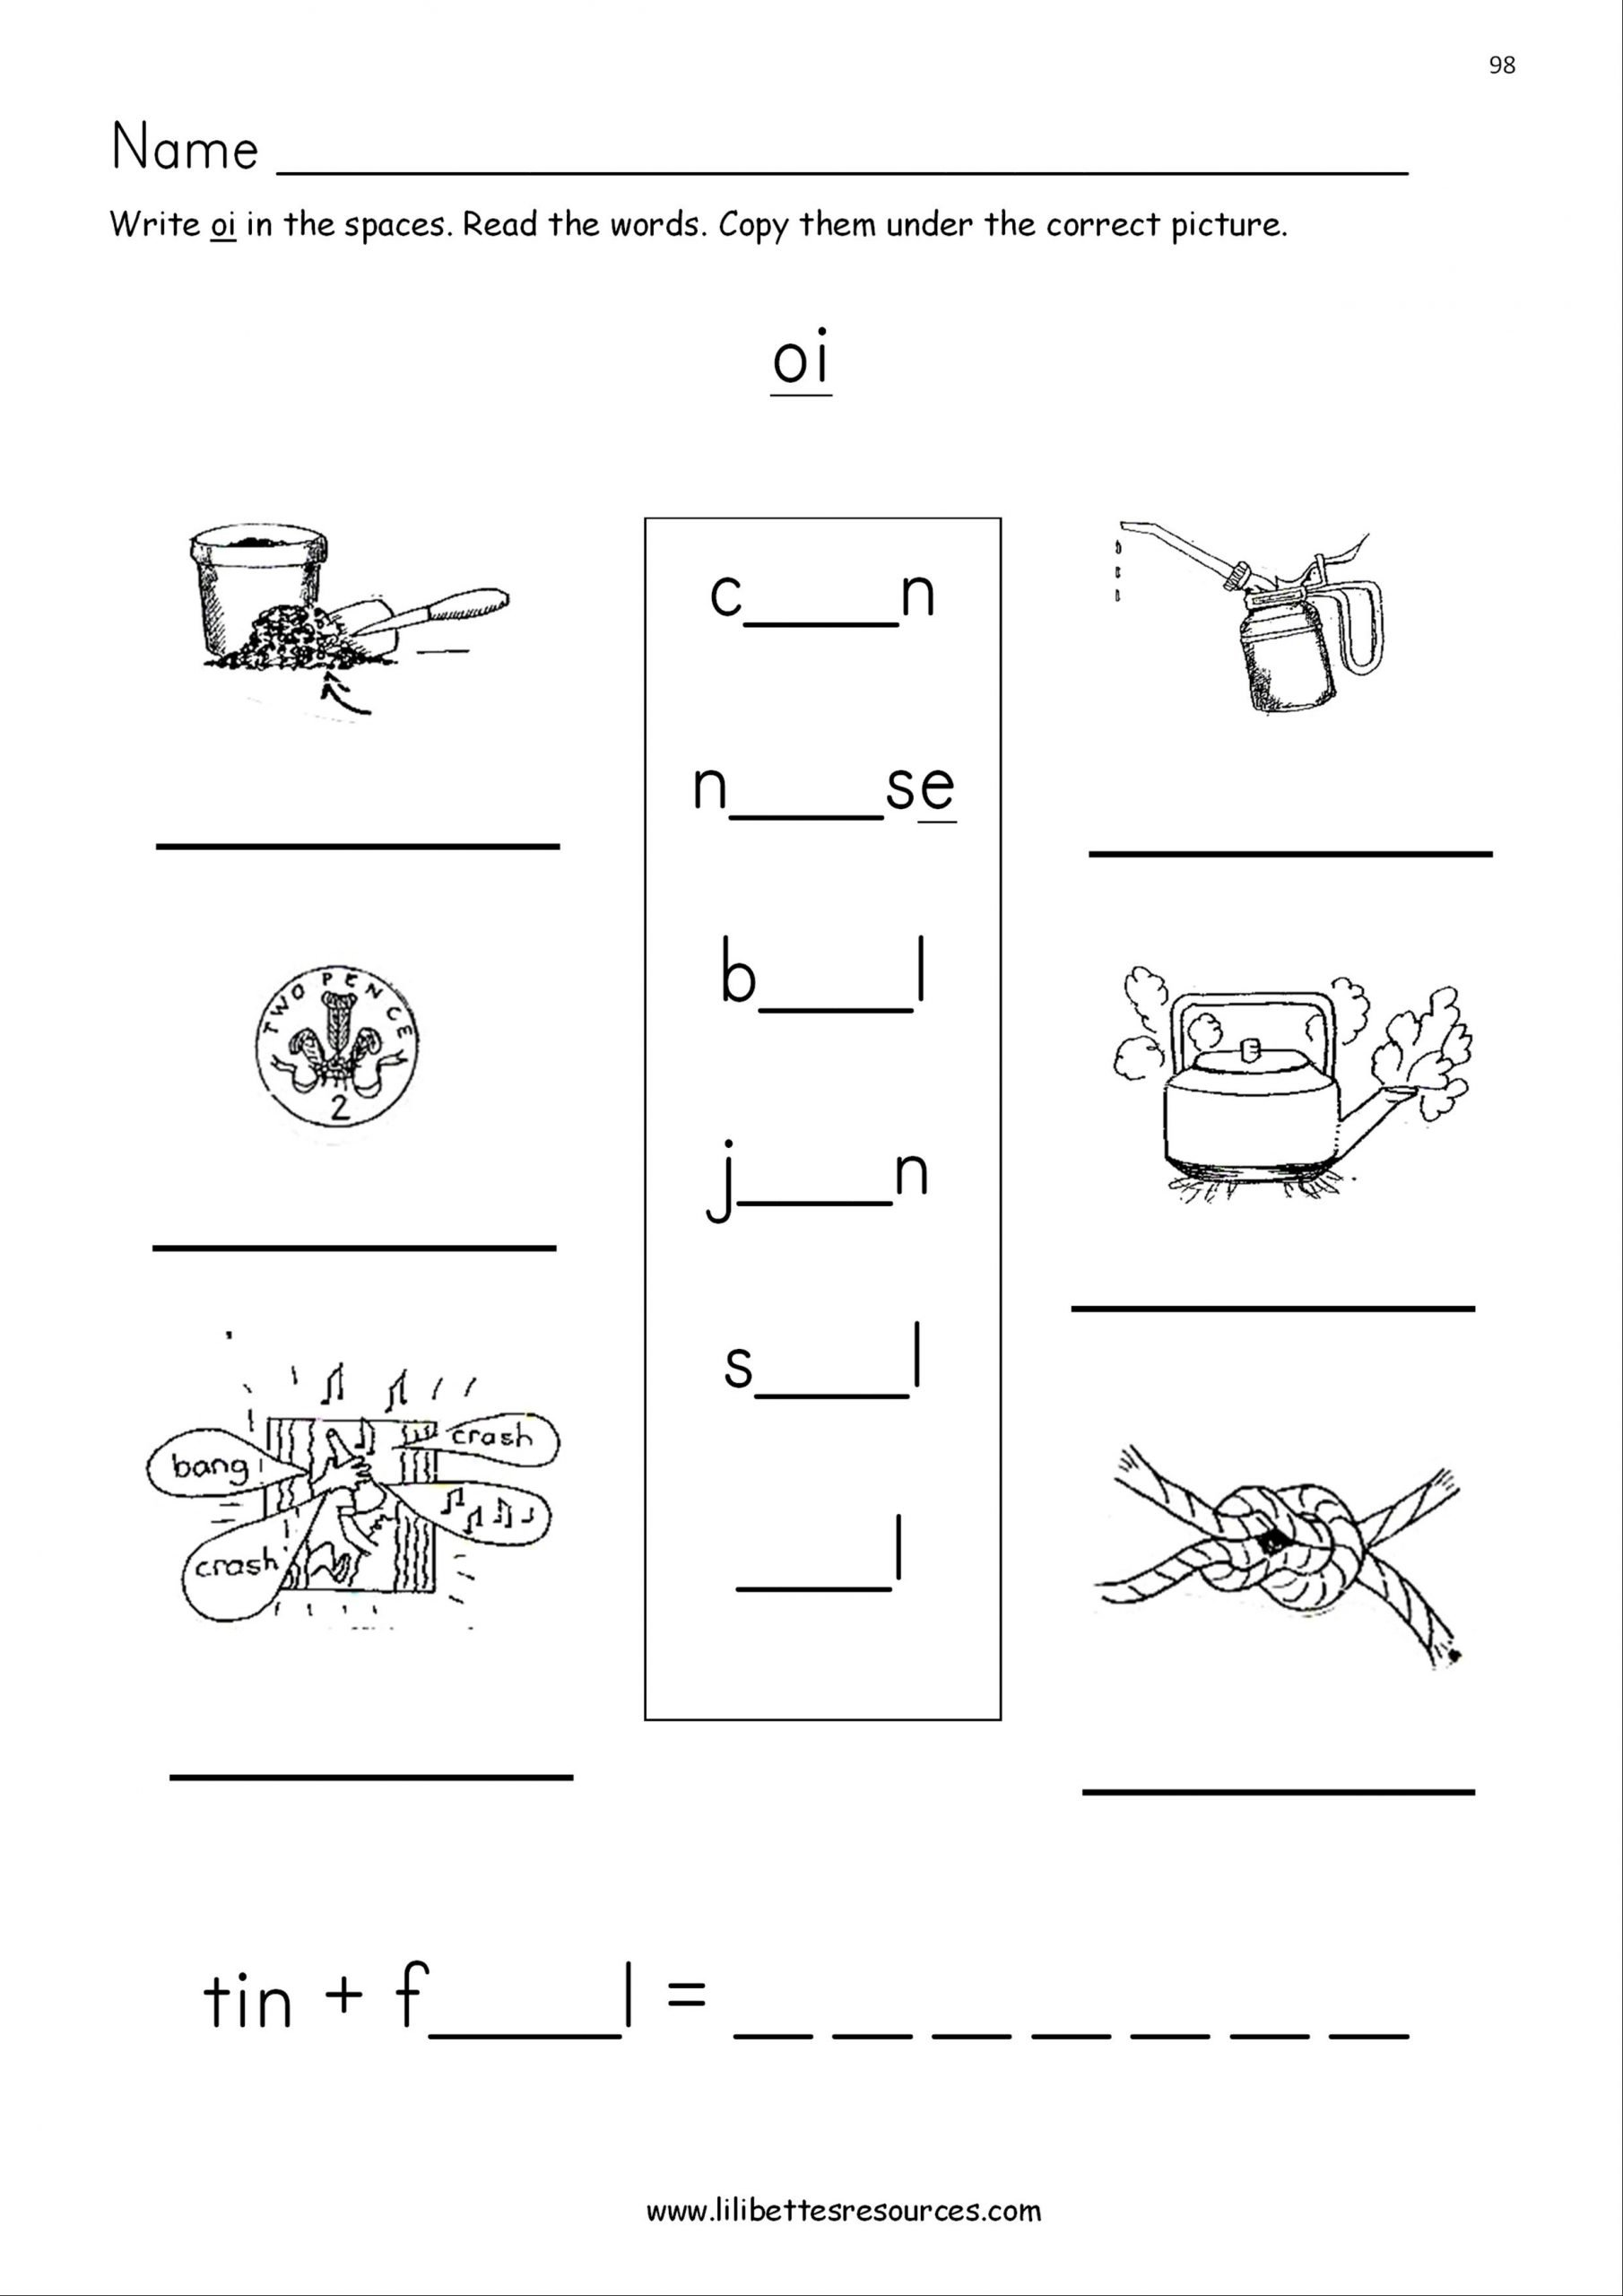 20 Oi Words Worksheet